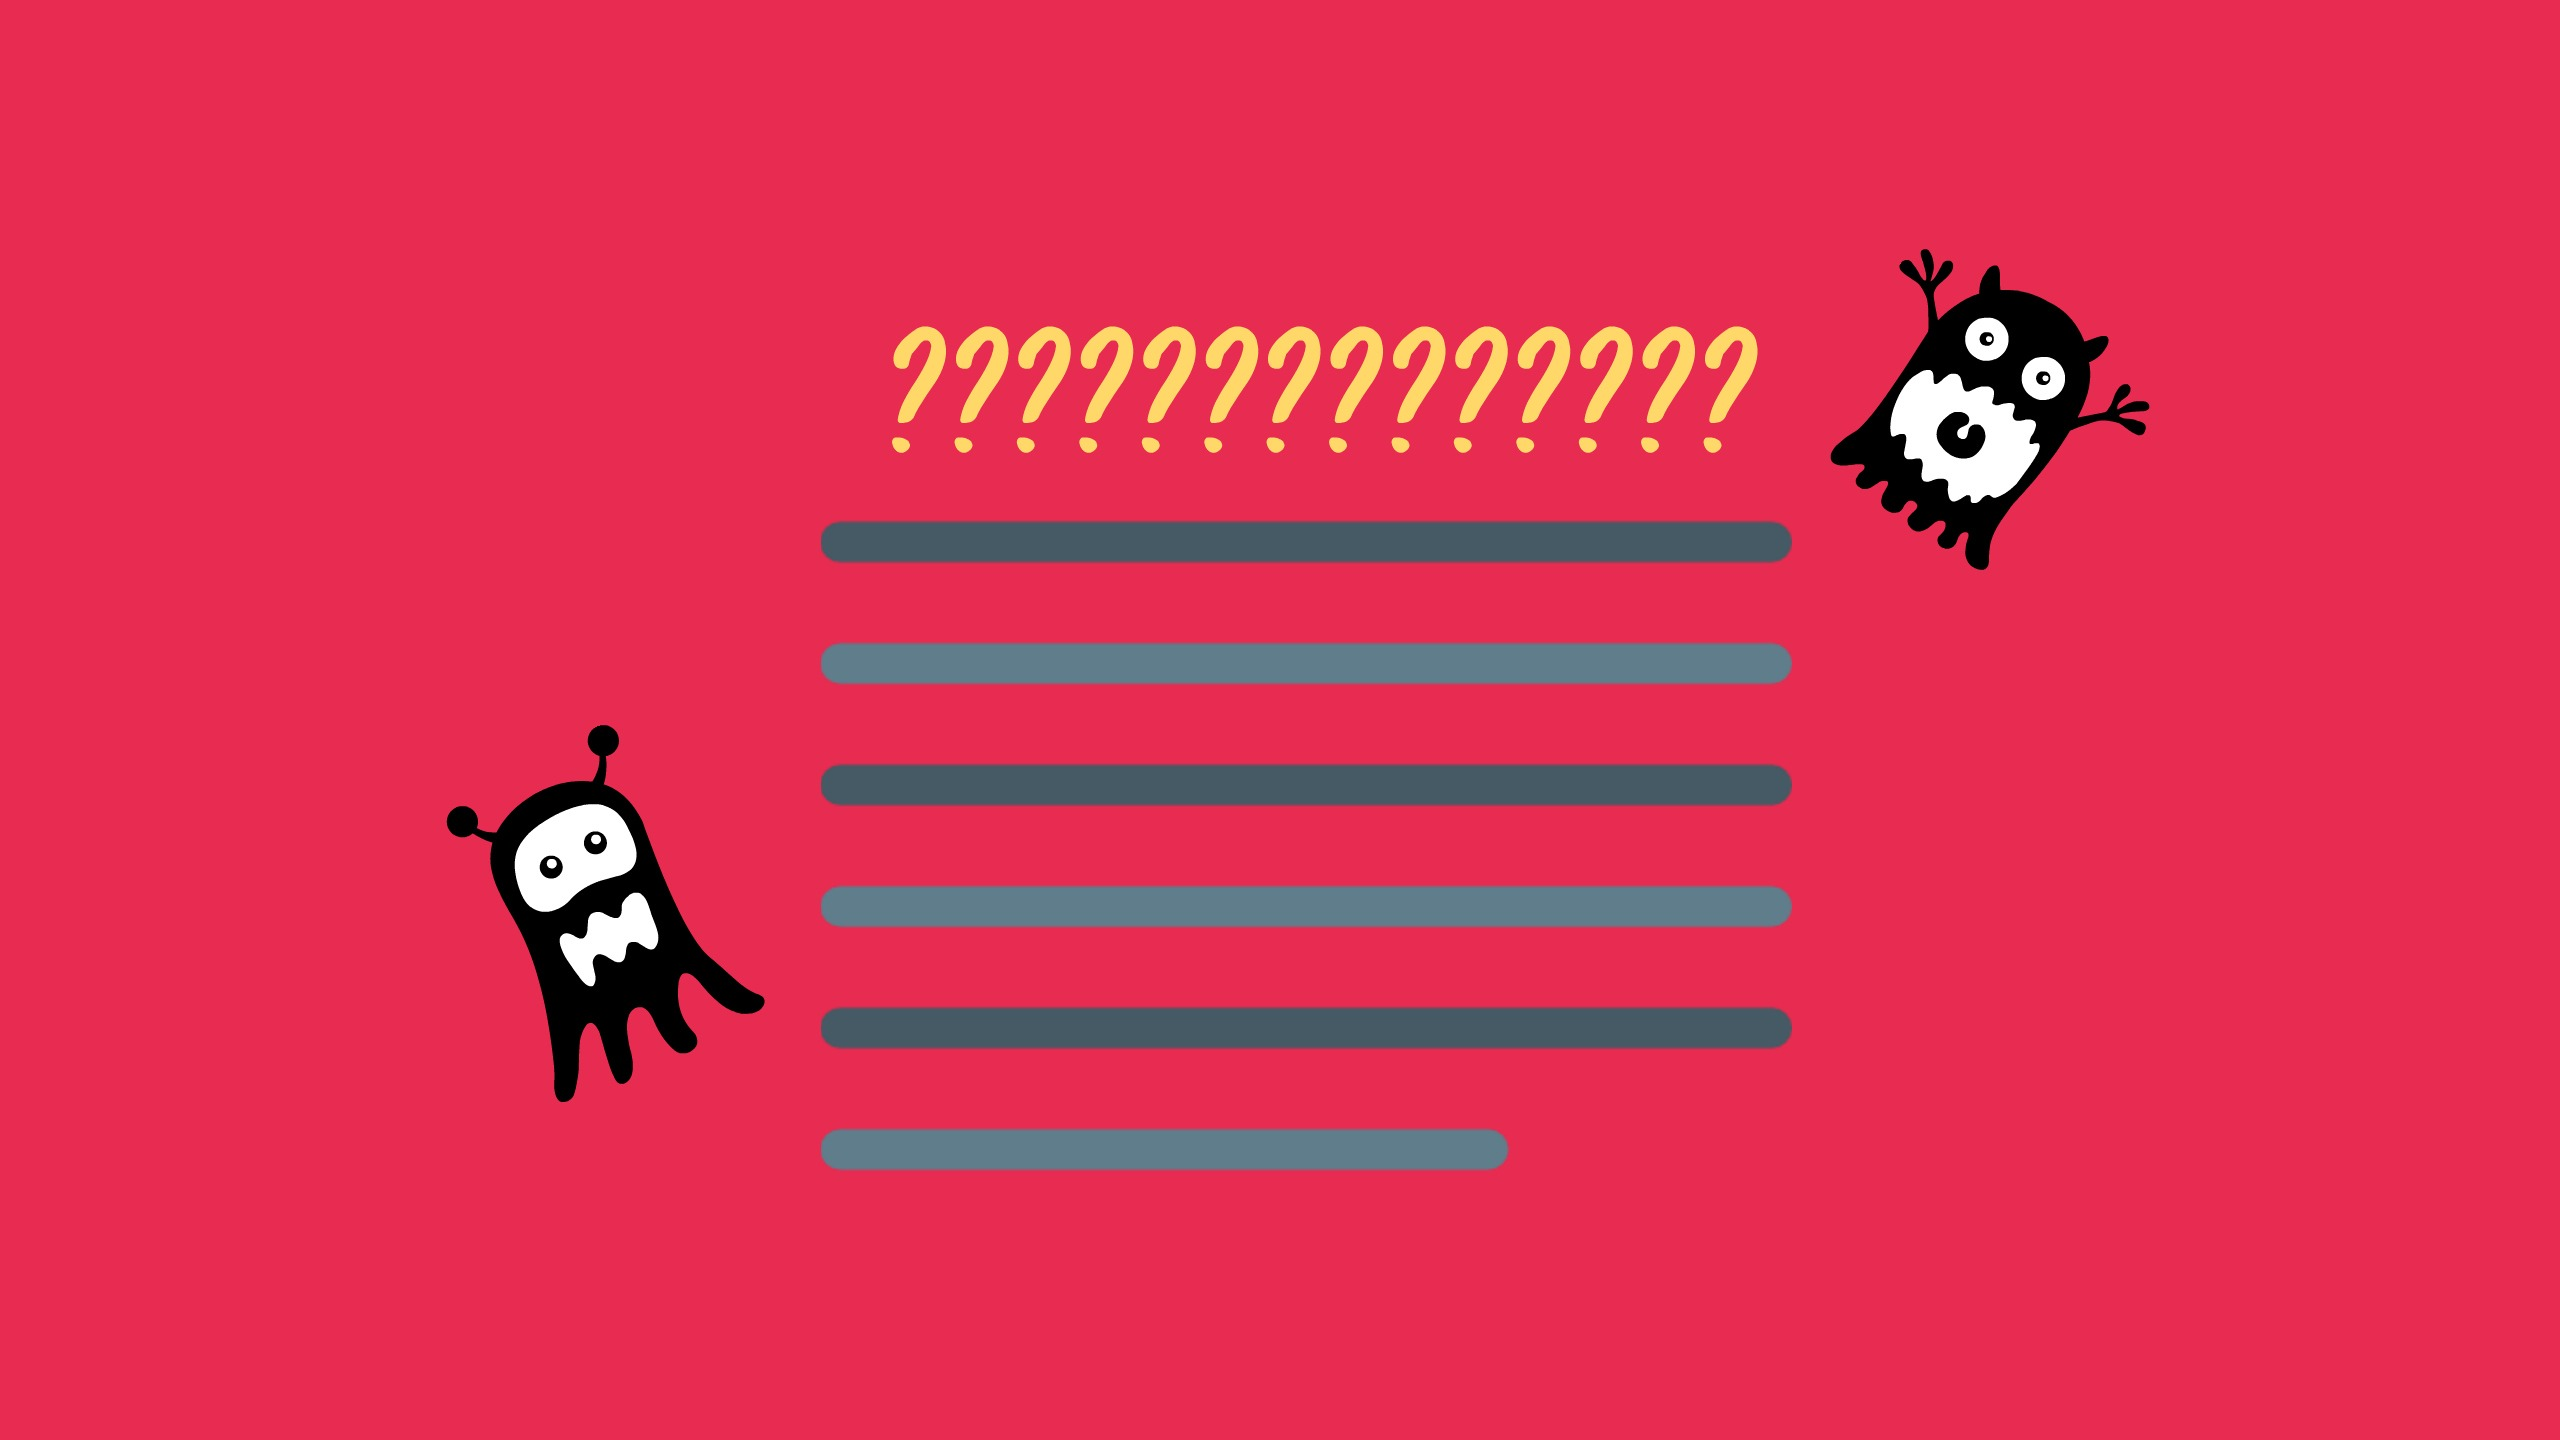 Black and grey lines to denote a paragraph sit on a red background. A row of question marks stand above to show how most students find it difficult to complete IELTS Heading Match Questions. Two small gremlins sit either side of the paragraph to symbolise the difficulty of the task